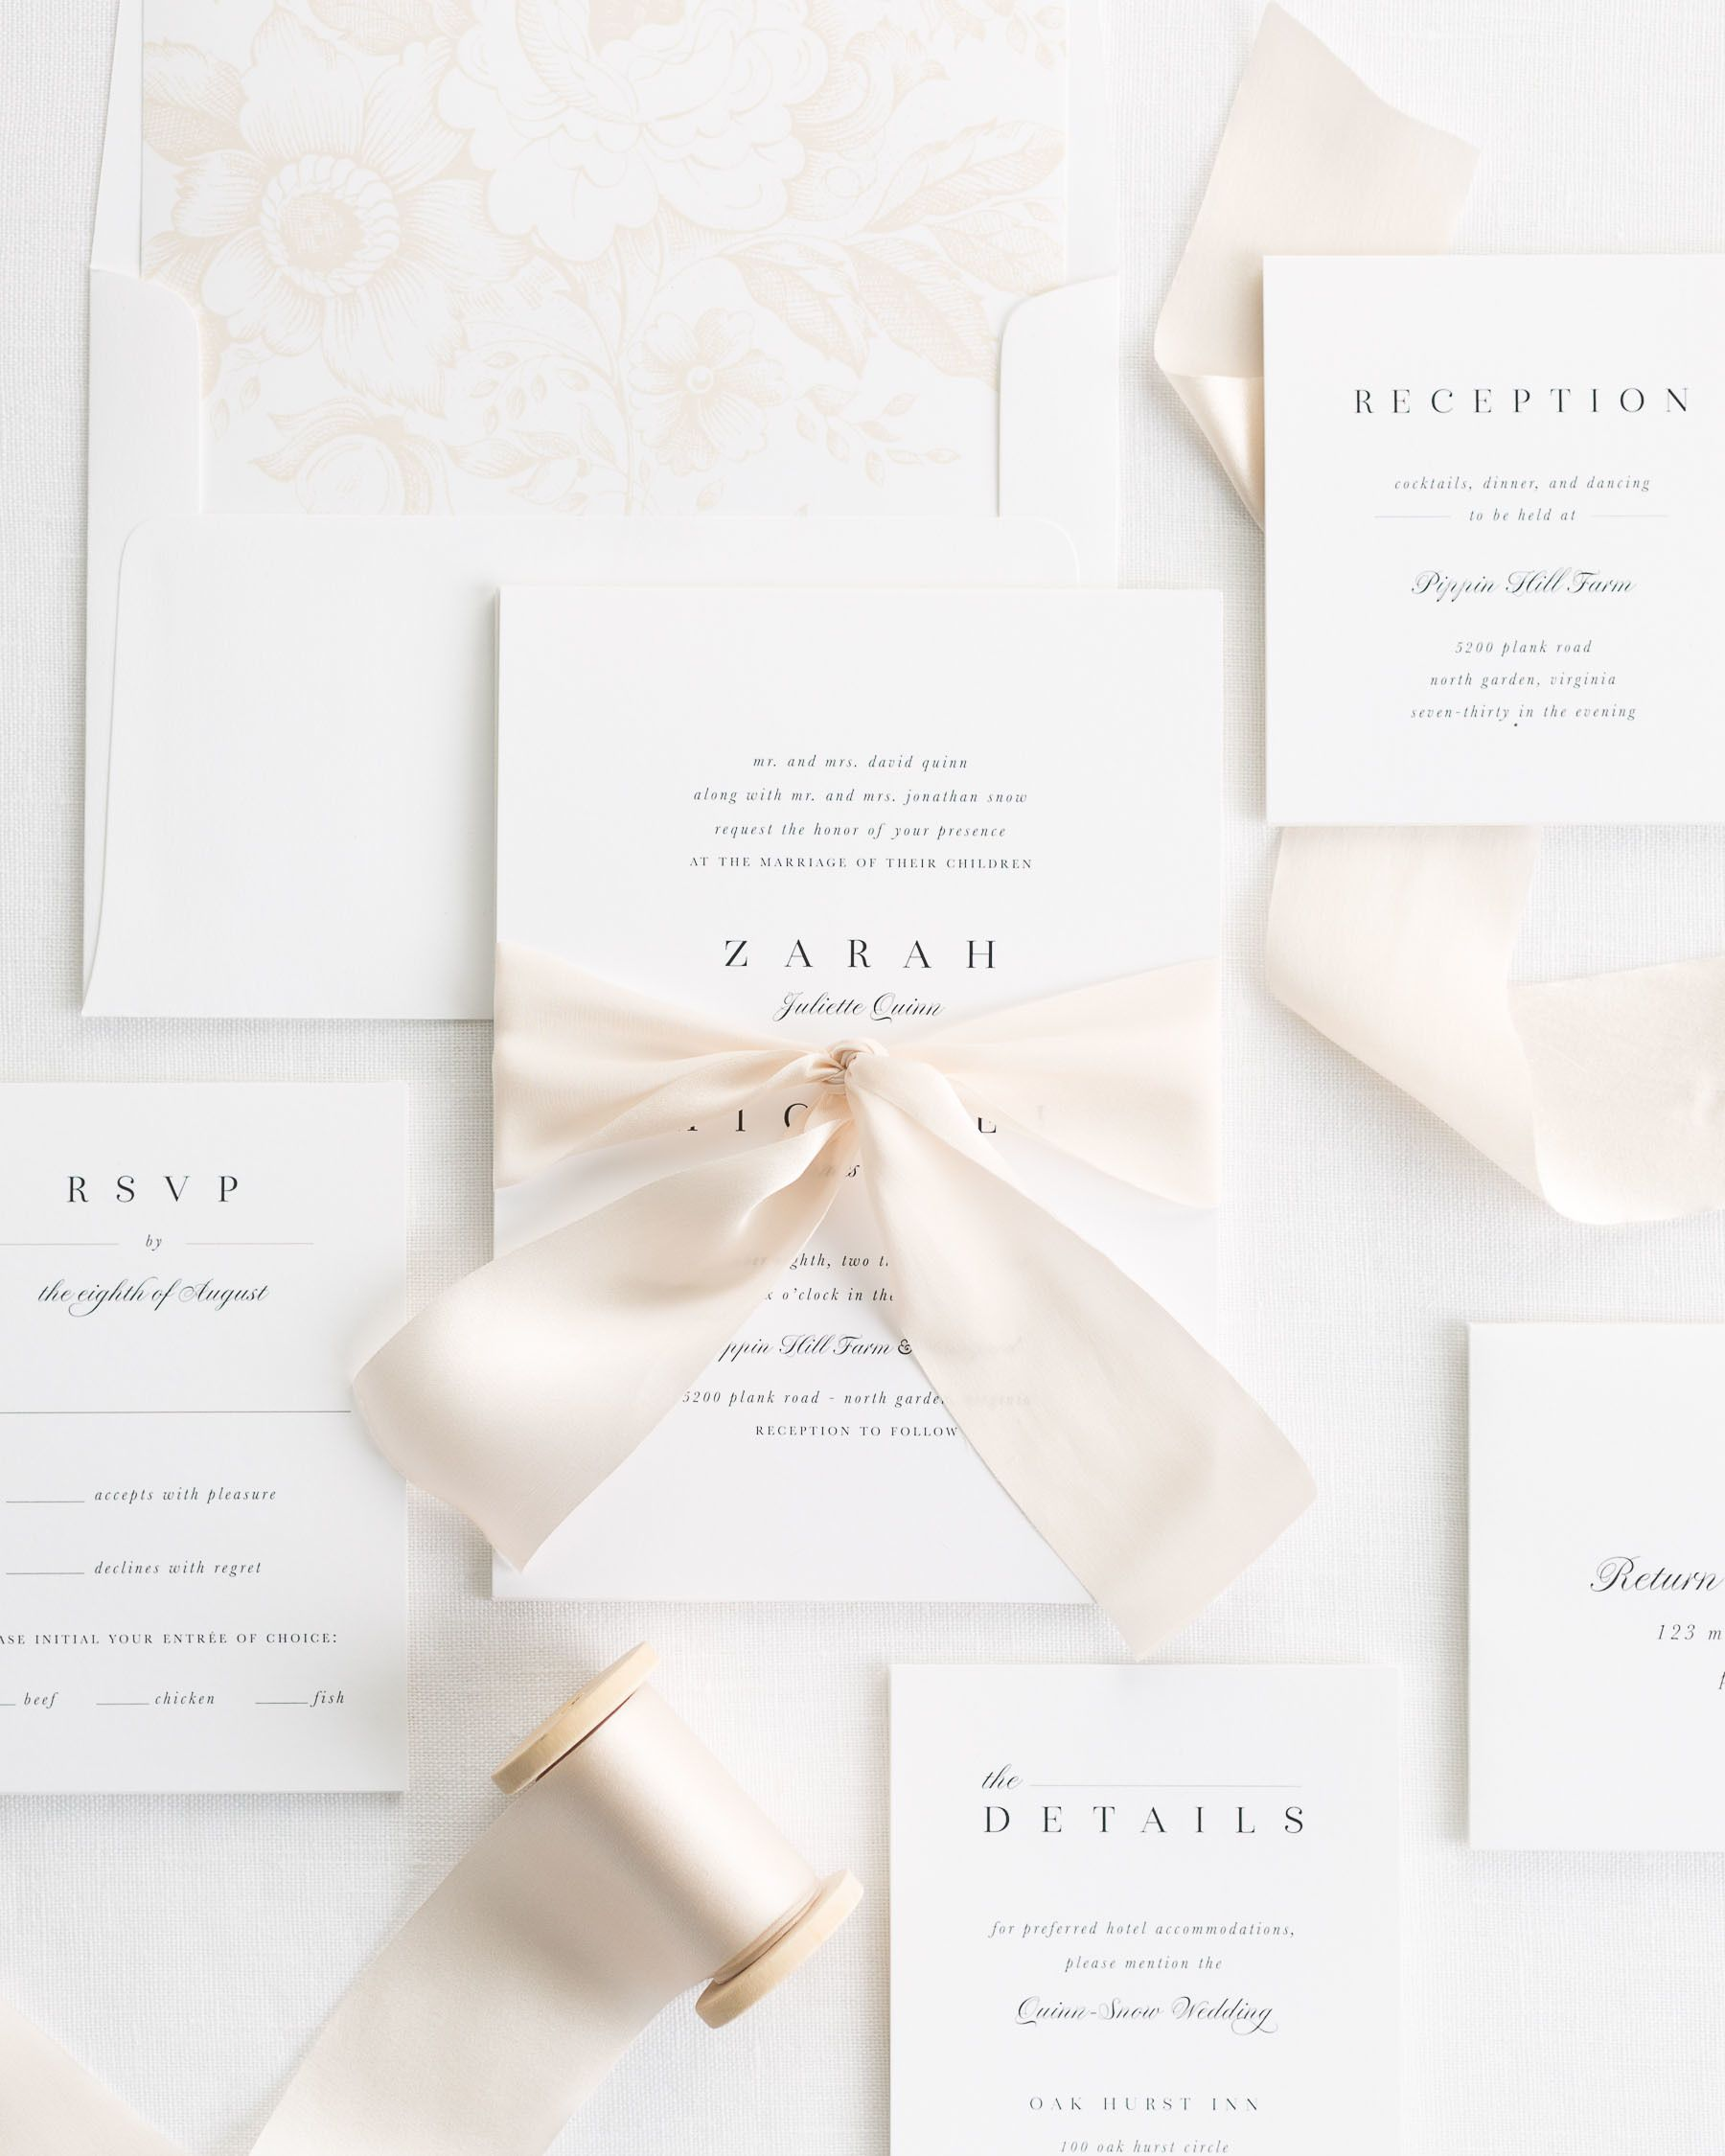 Top 5 Wedding Invitation Mistakes and How to Avoid Them | Ads ...